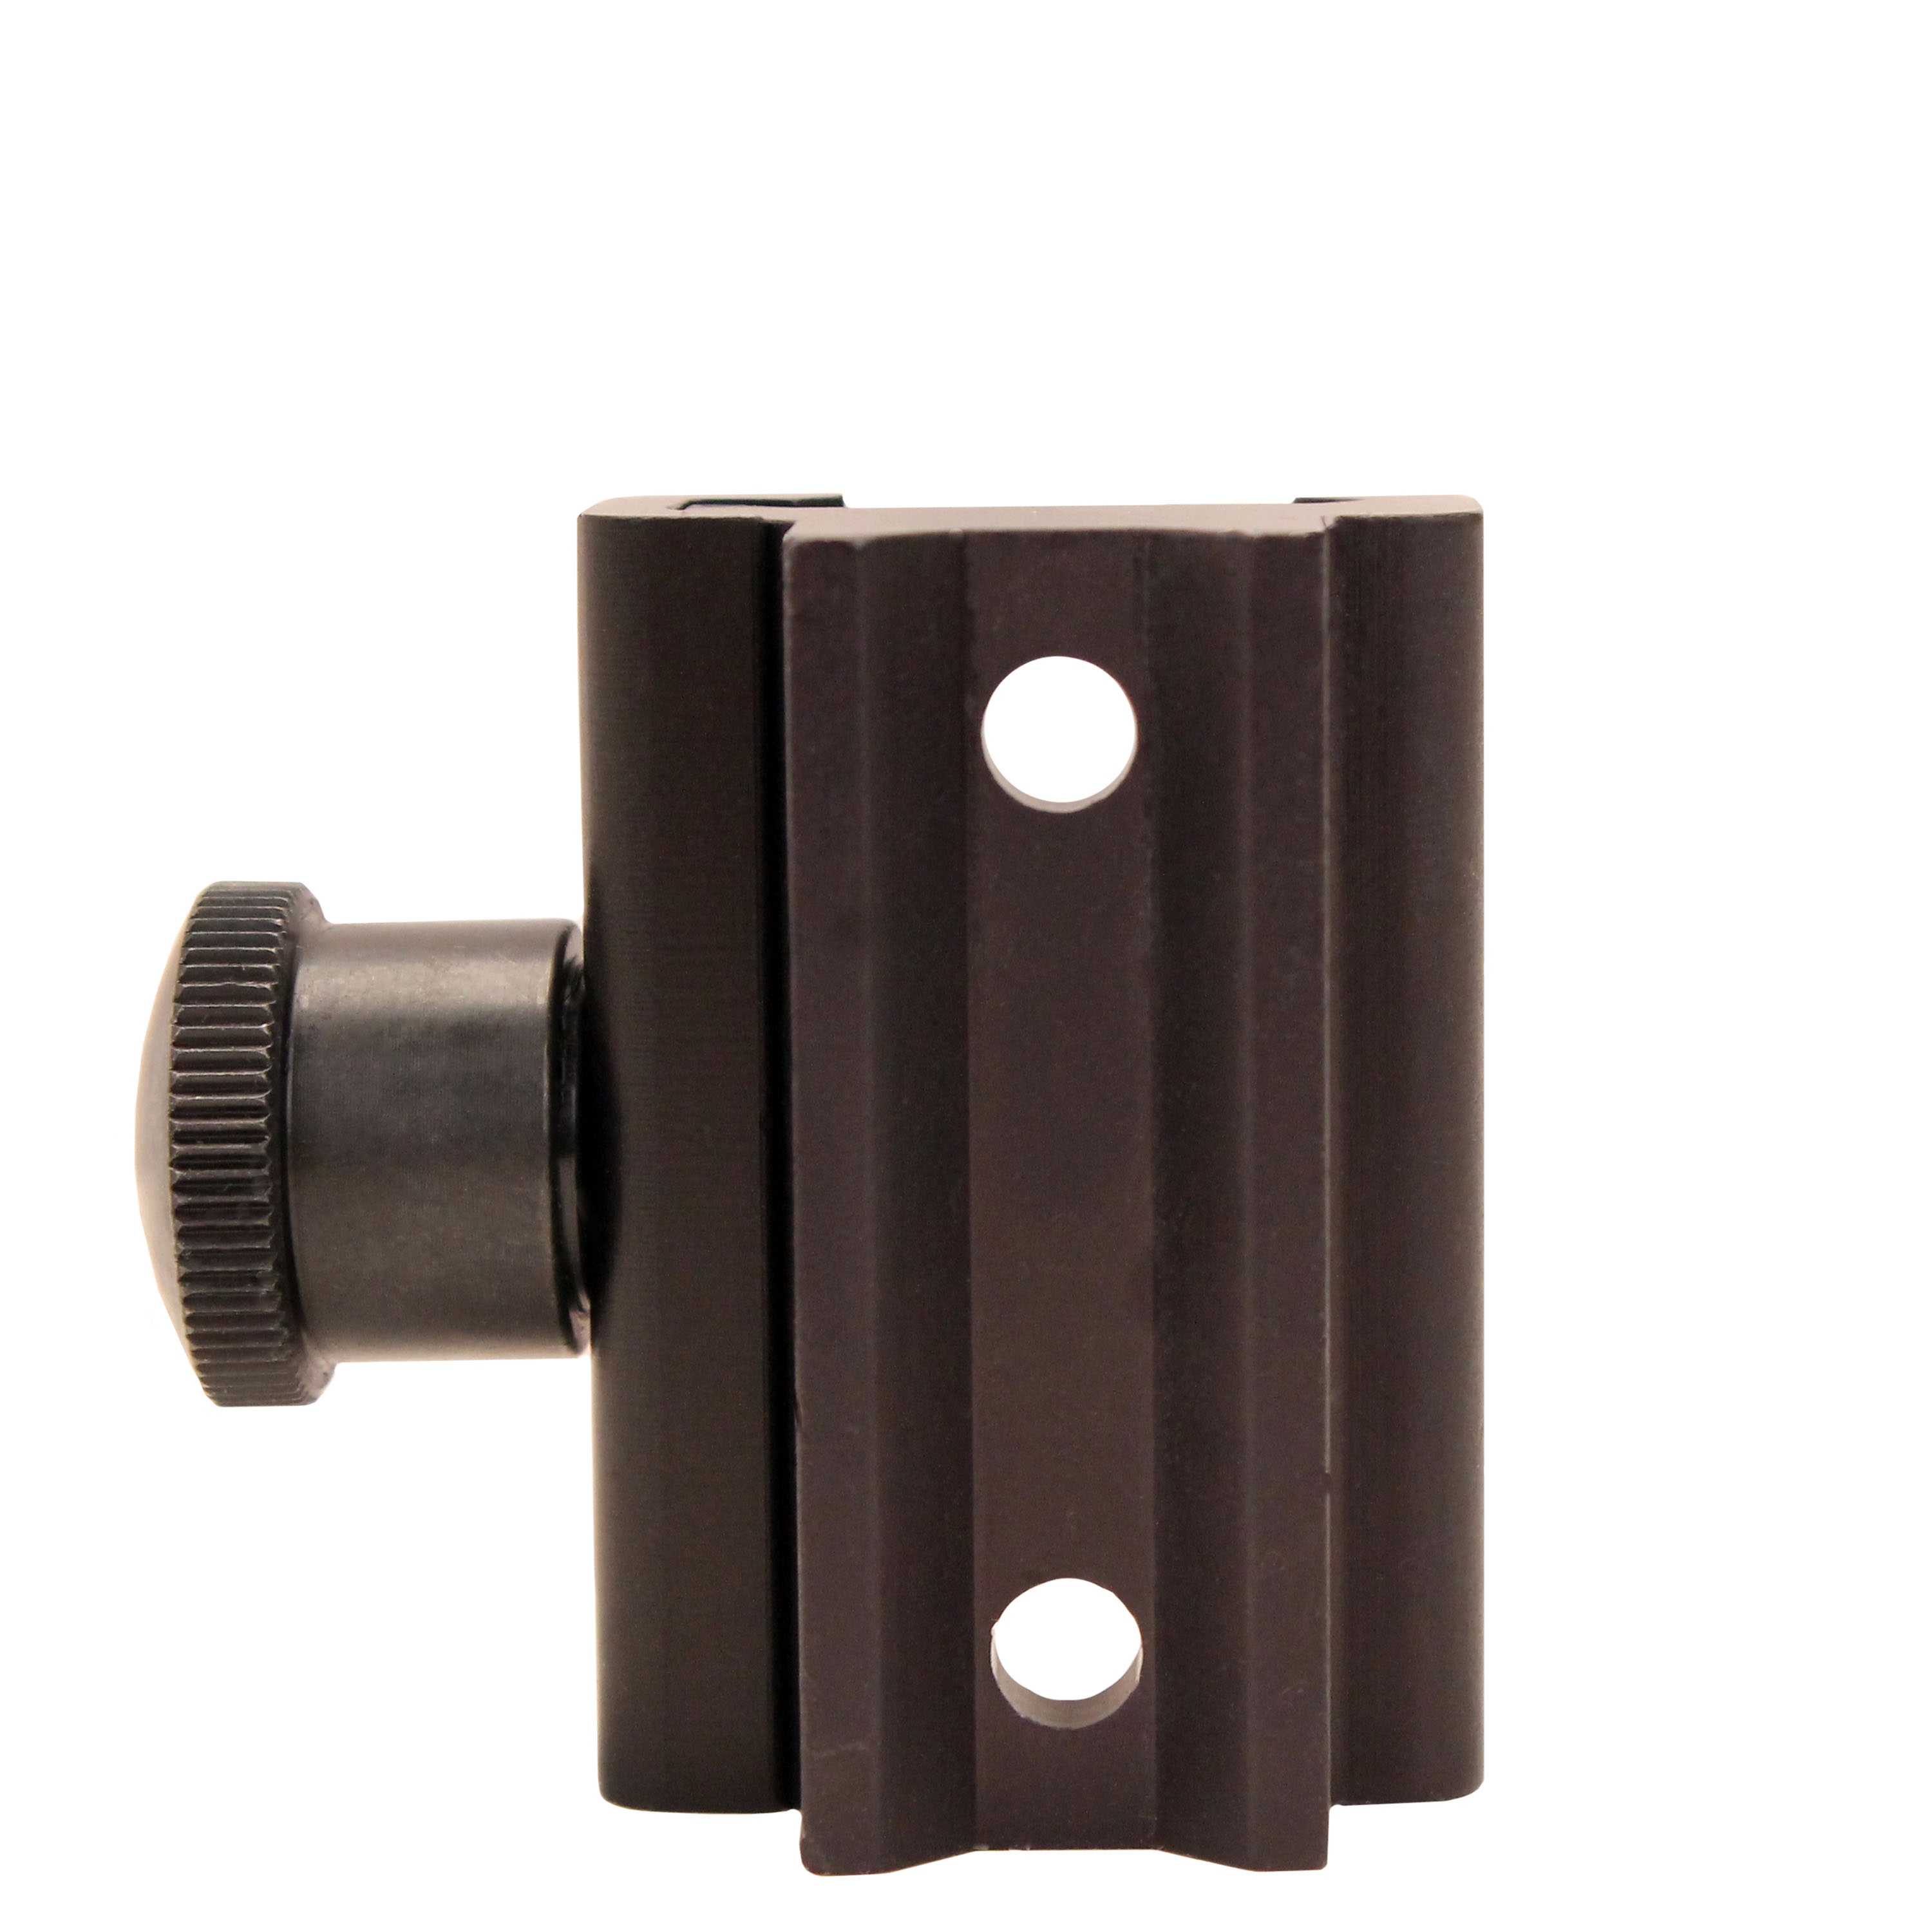 Trijicon Compact ACOG Mount High Weaver with Colt Knob for 1.5x16S 1.5x24 2x20 3x24 3x30 (Gen 2 Only), Black by Trijicon